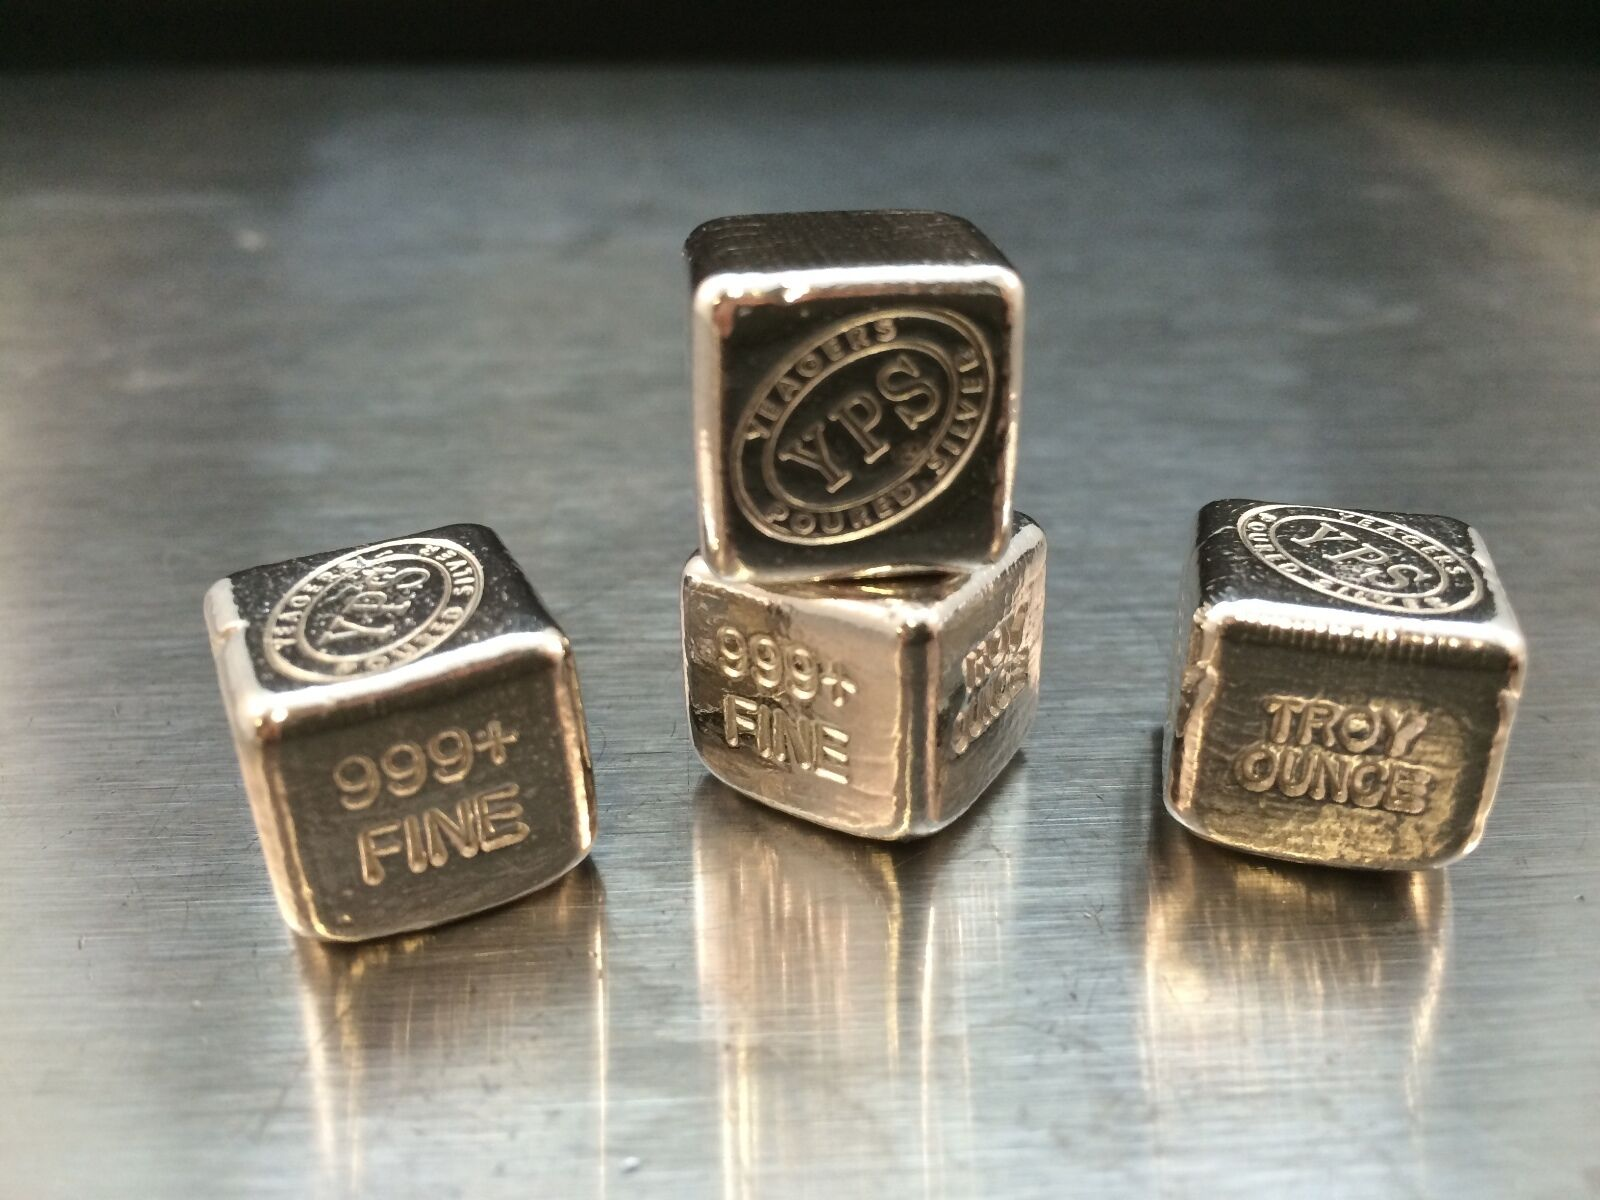 """1 oz Hand Poured 999 Silver Bullion Bar """"Cube"""" by YPS - Yeager's Poured Silver"""